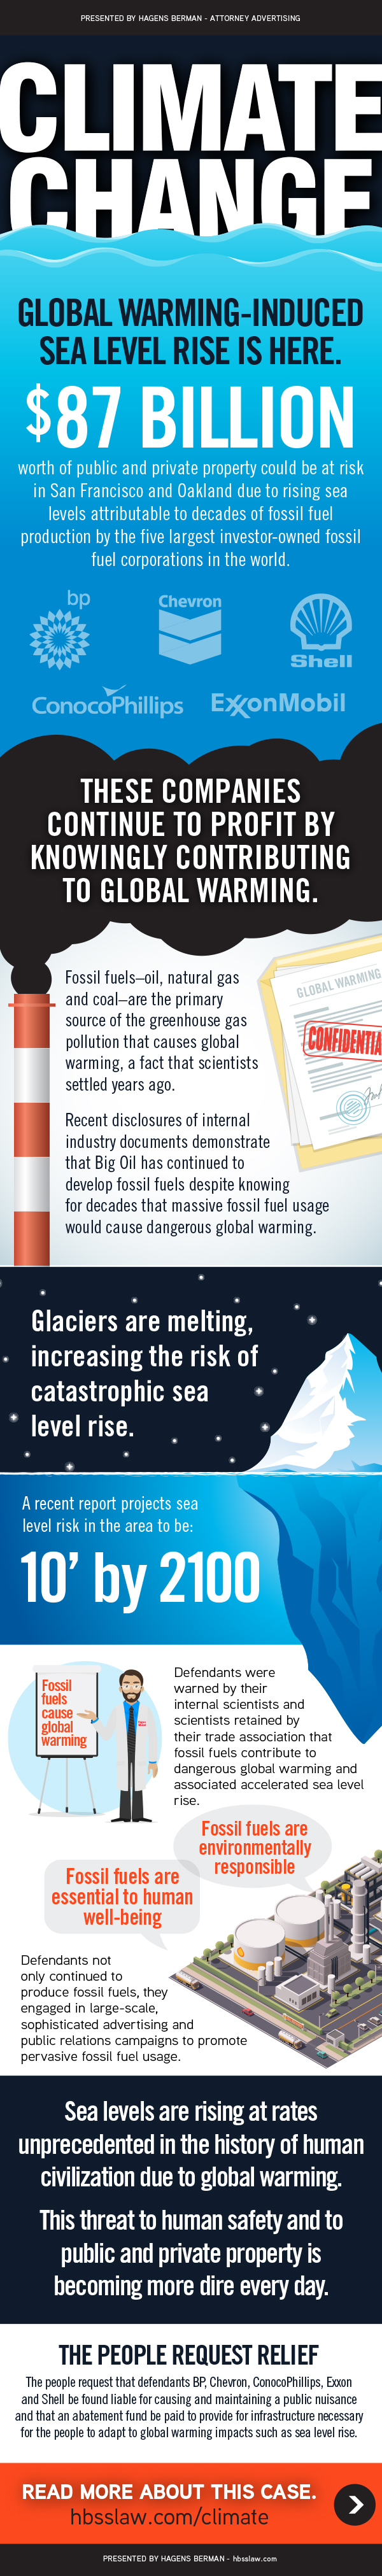 Hagens Berman Climate Change Infographic